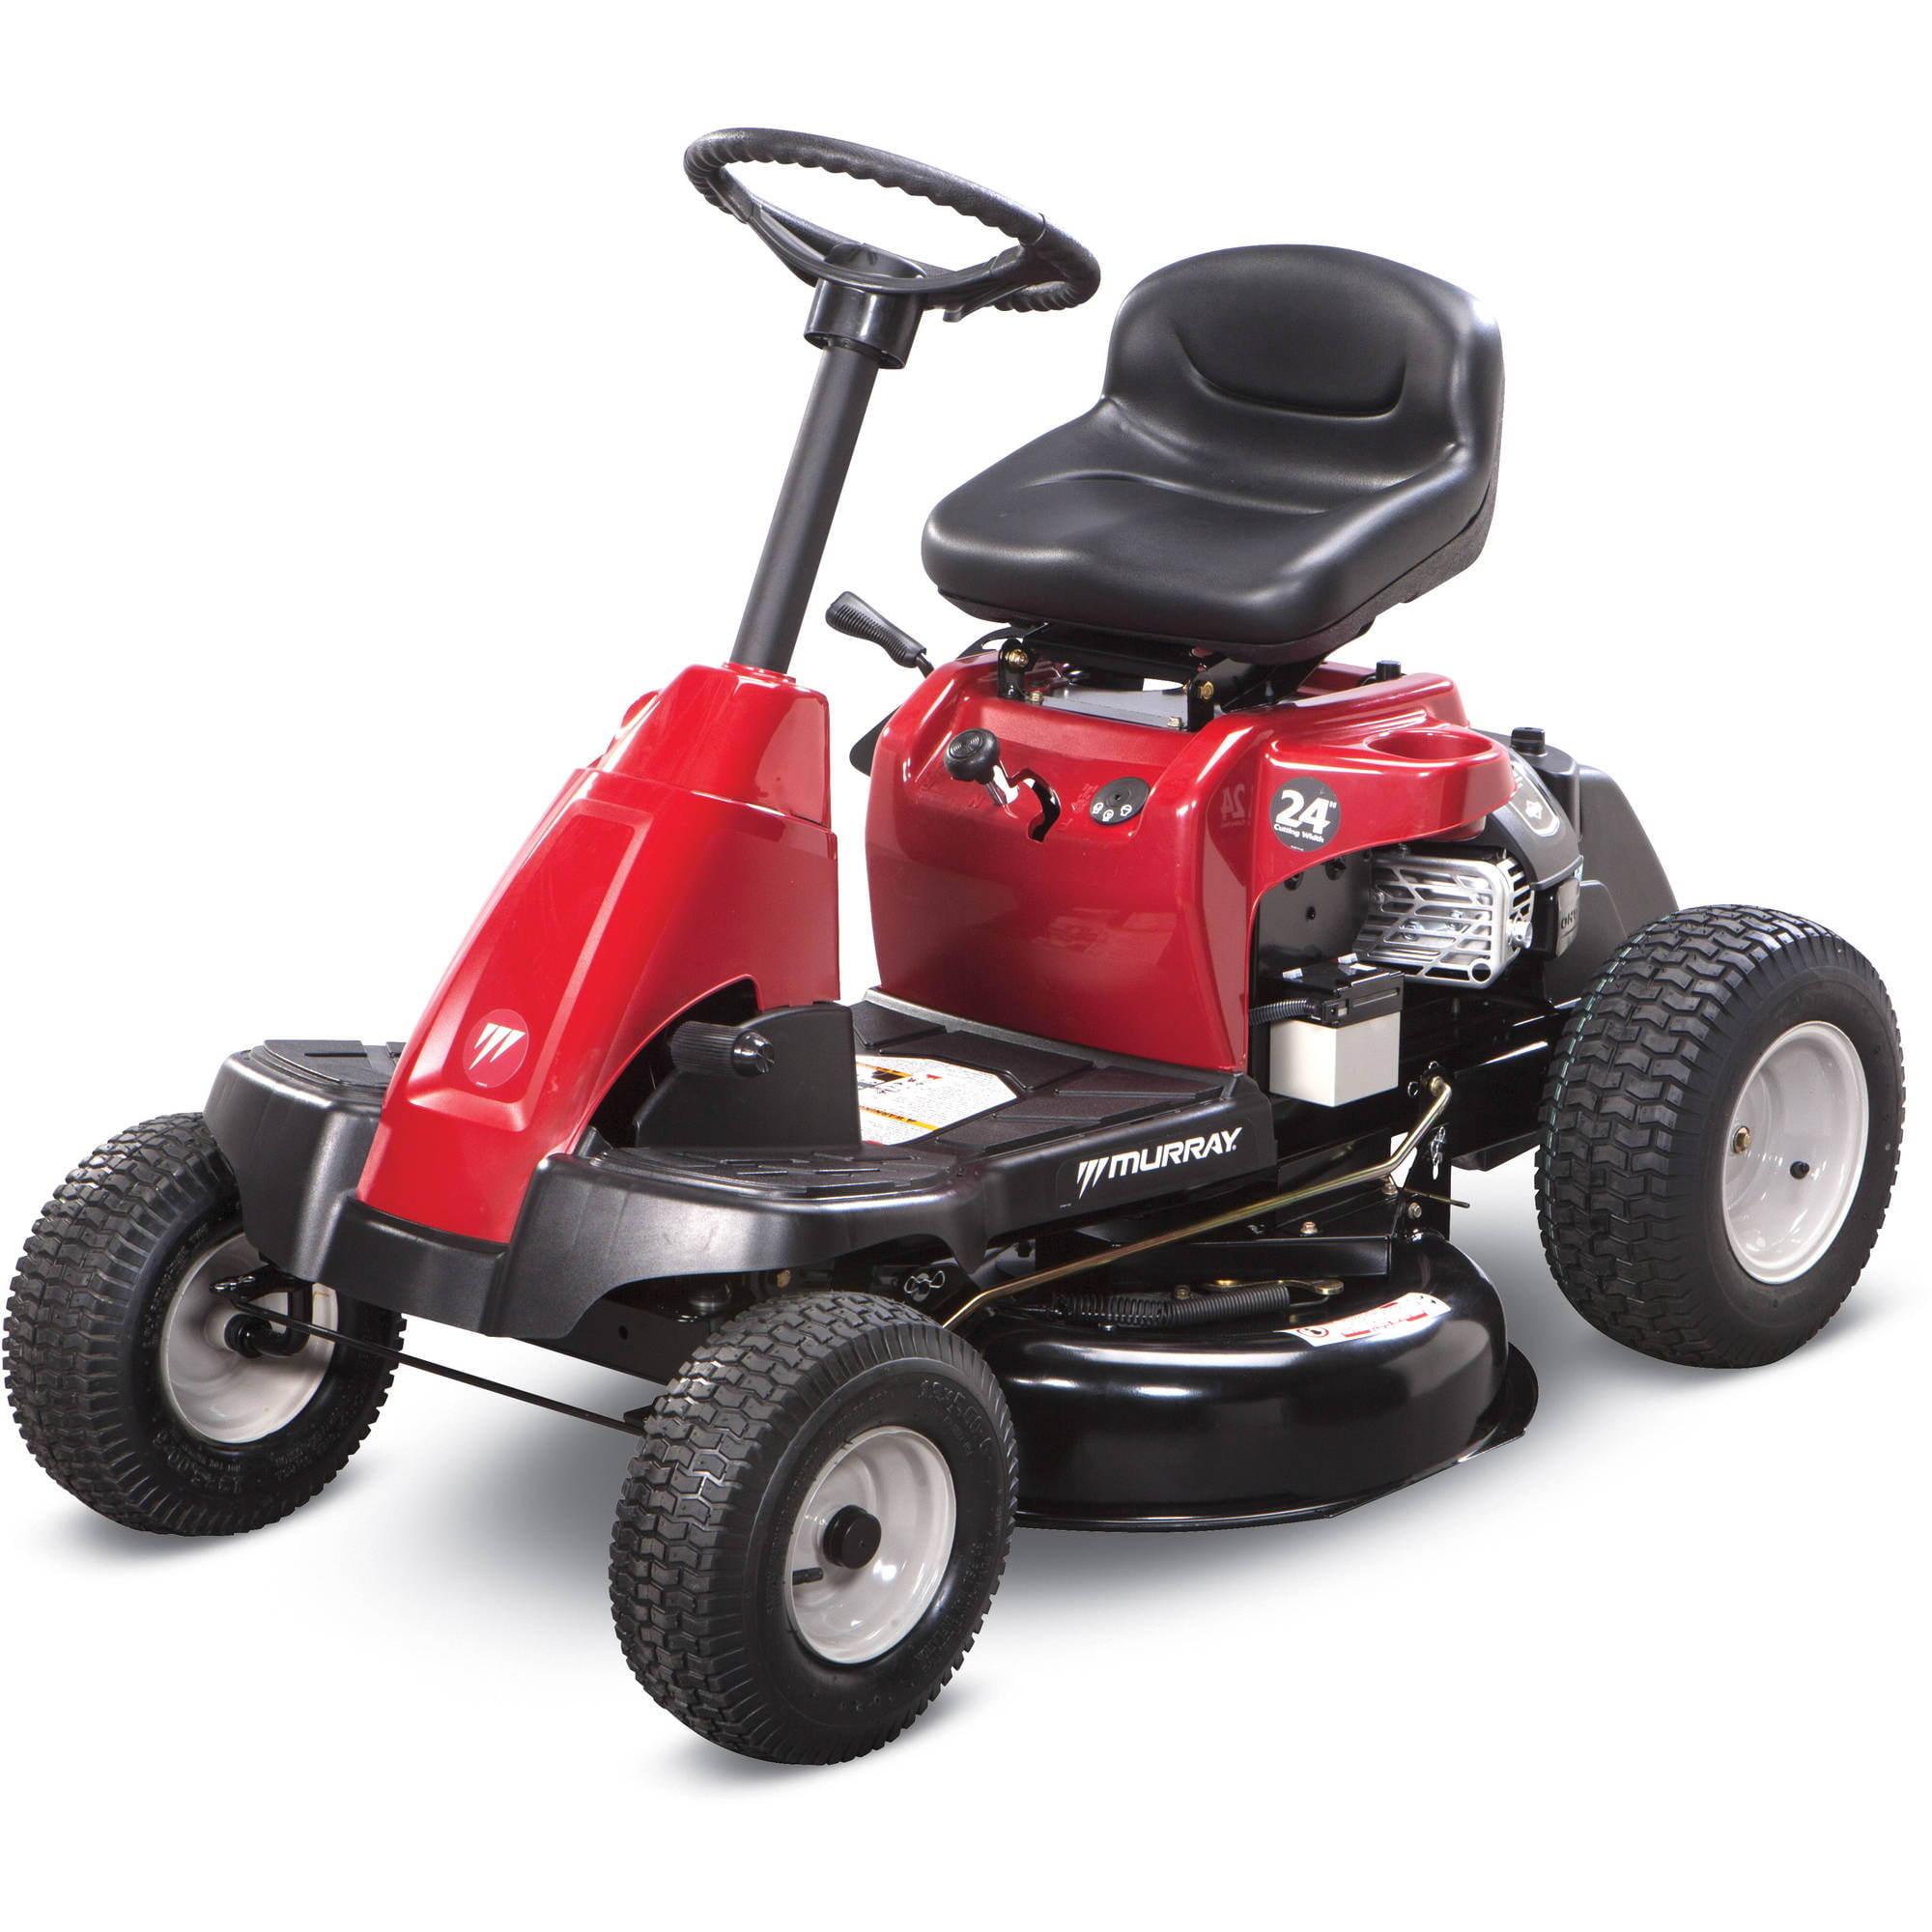 Murray 24 Rear Engine Riding Mower With Mulch Kit Sears Suburban 15 Tractor Wiring Diagram